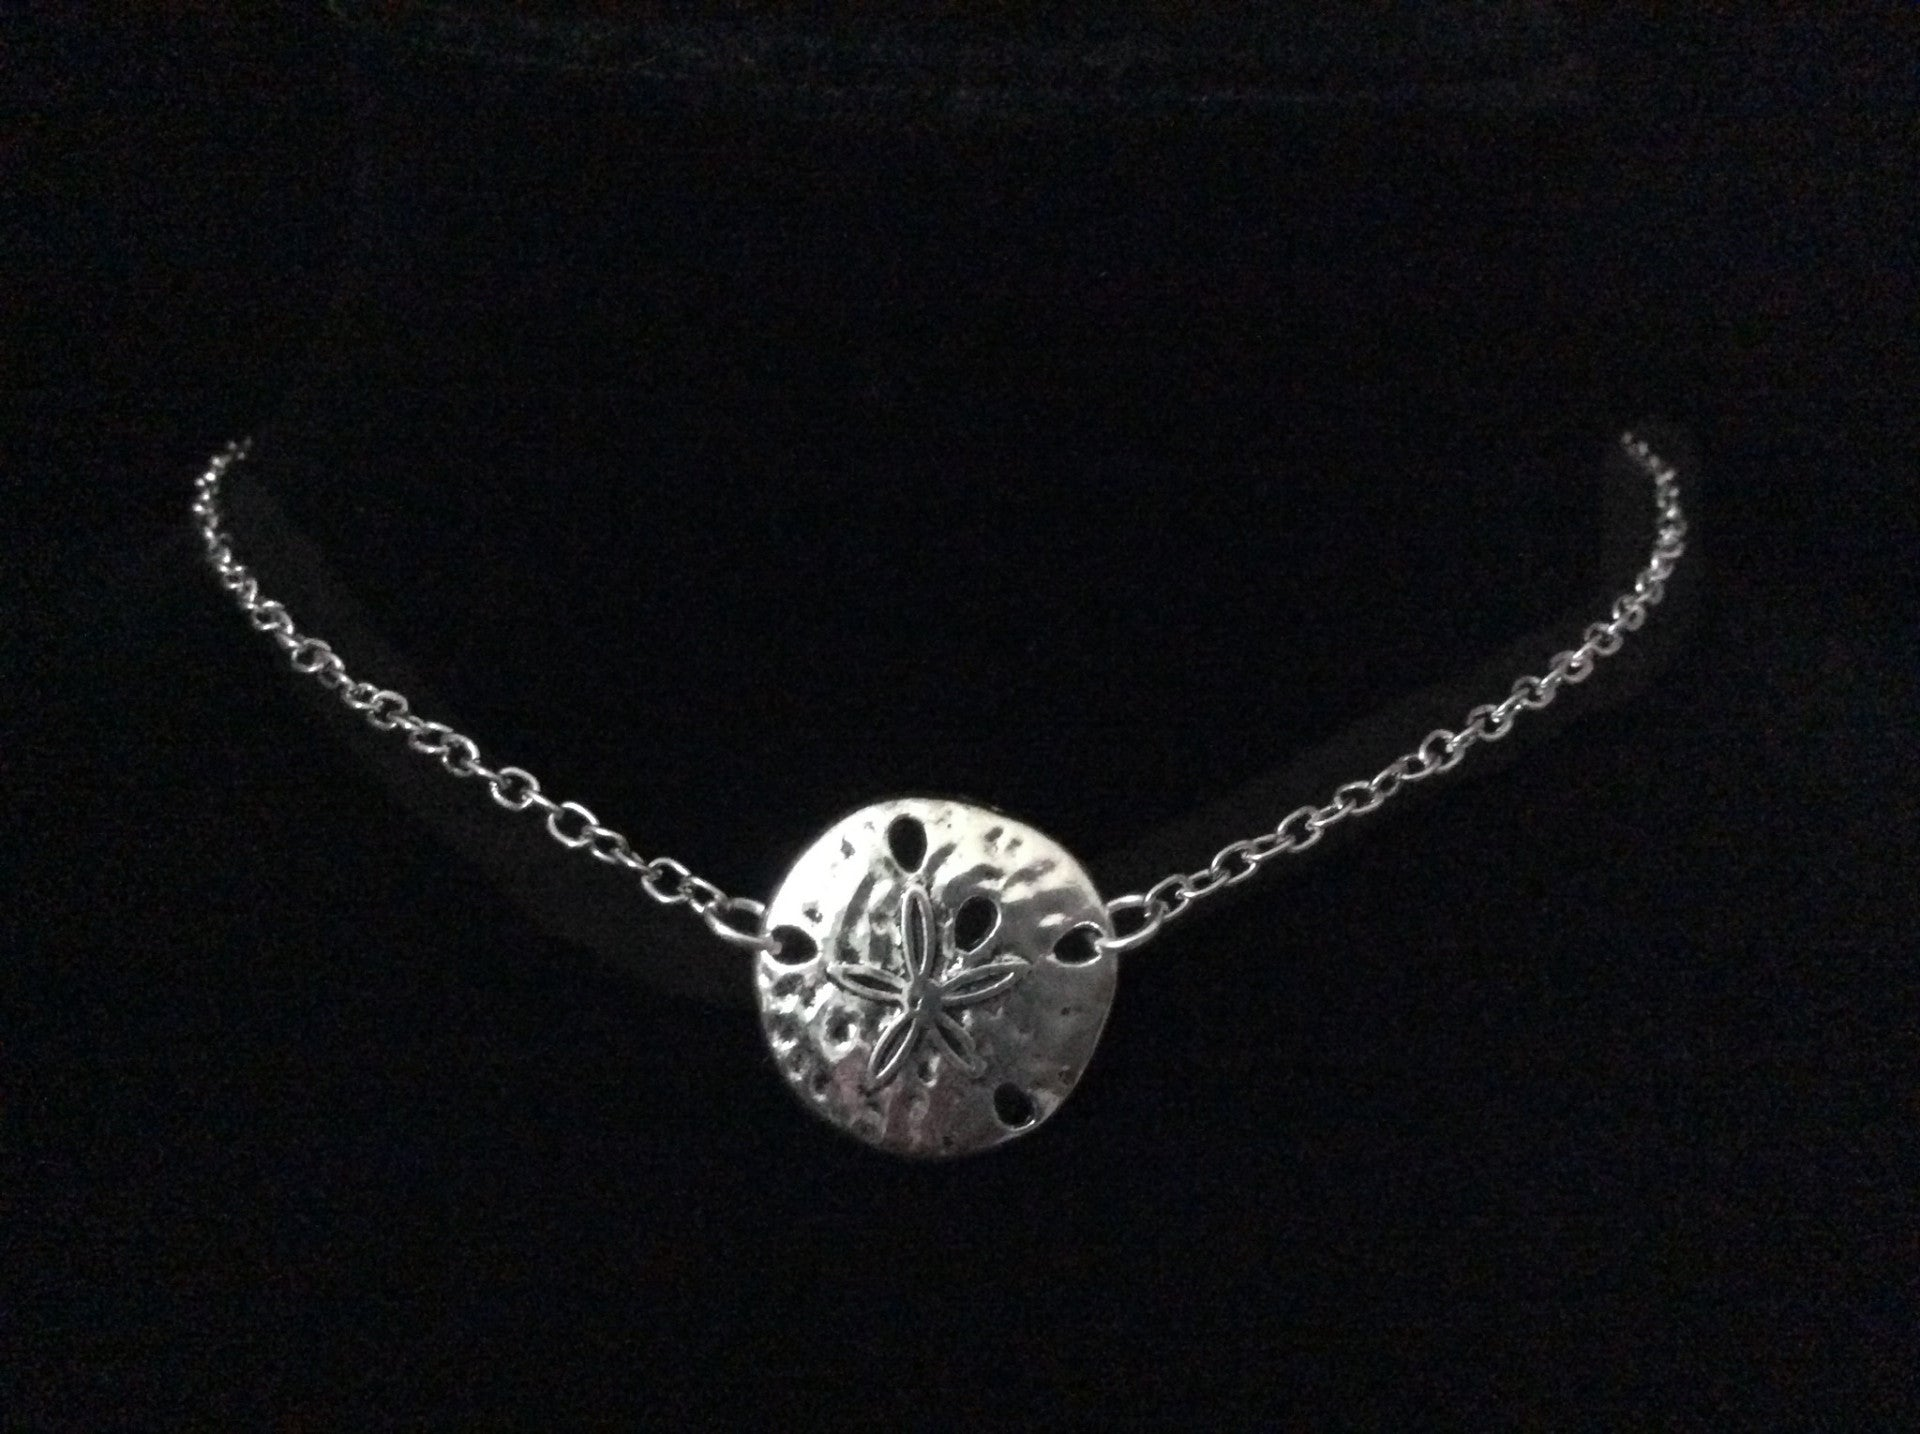 chain necklace mm heavy silver mens curb